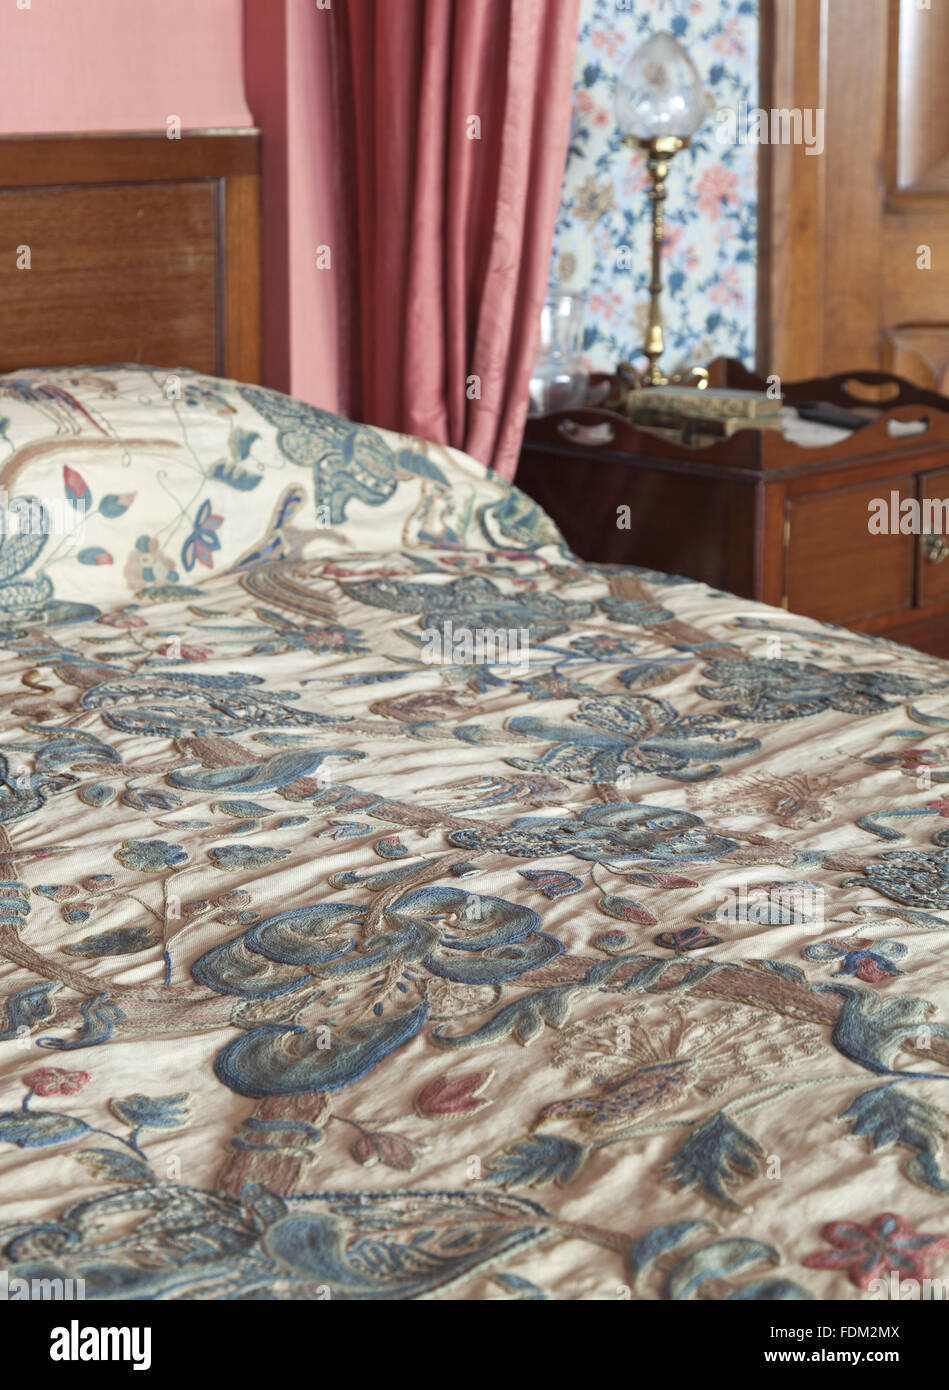 The Embroidered Bedspread On The Mahogany Four Poster Bed In The Stock Photo Alamy